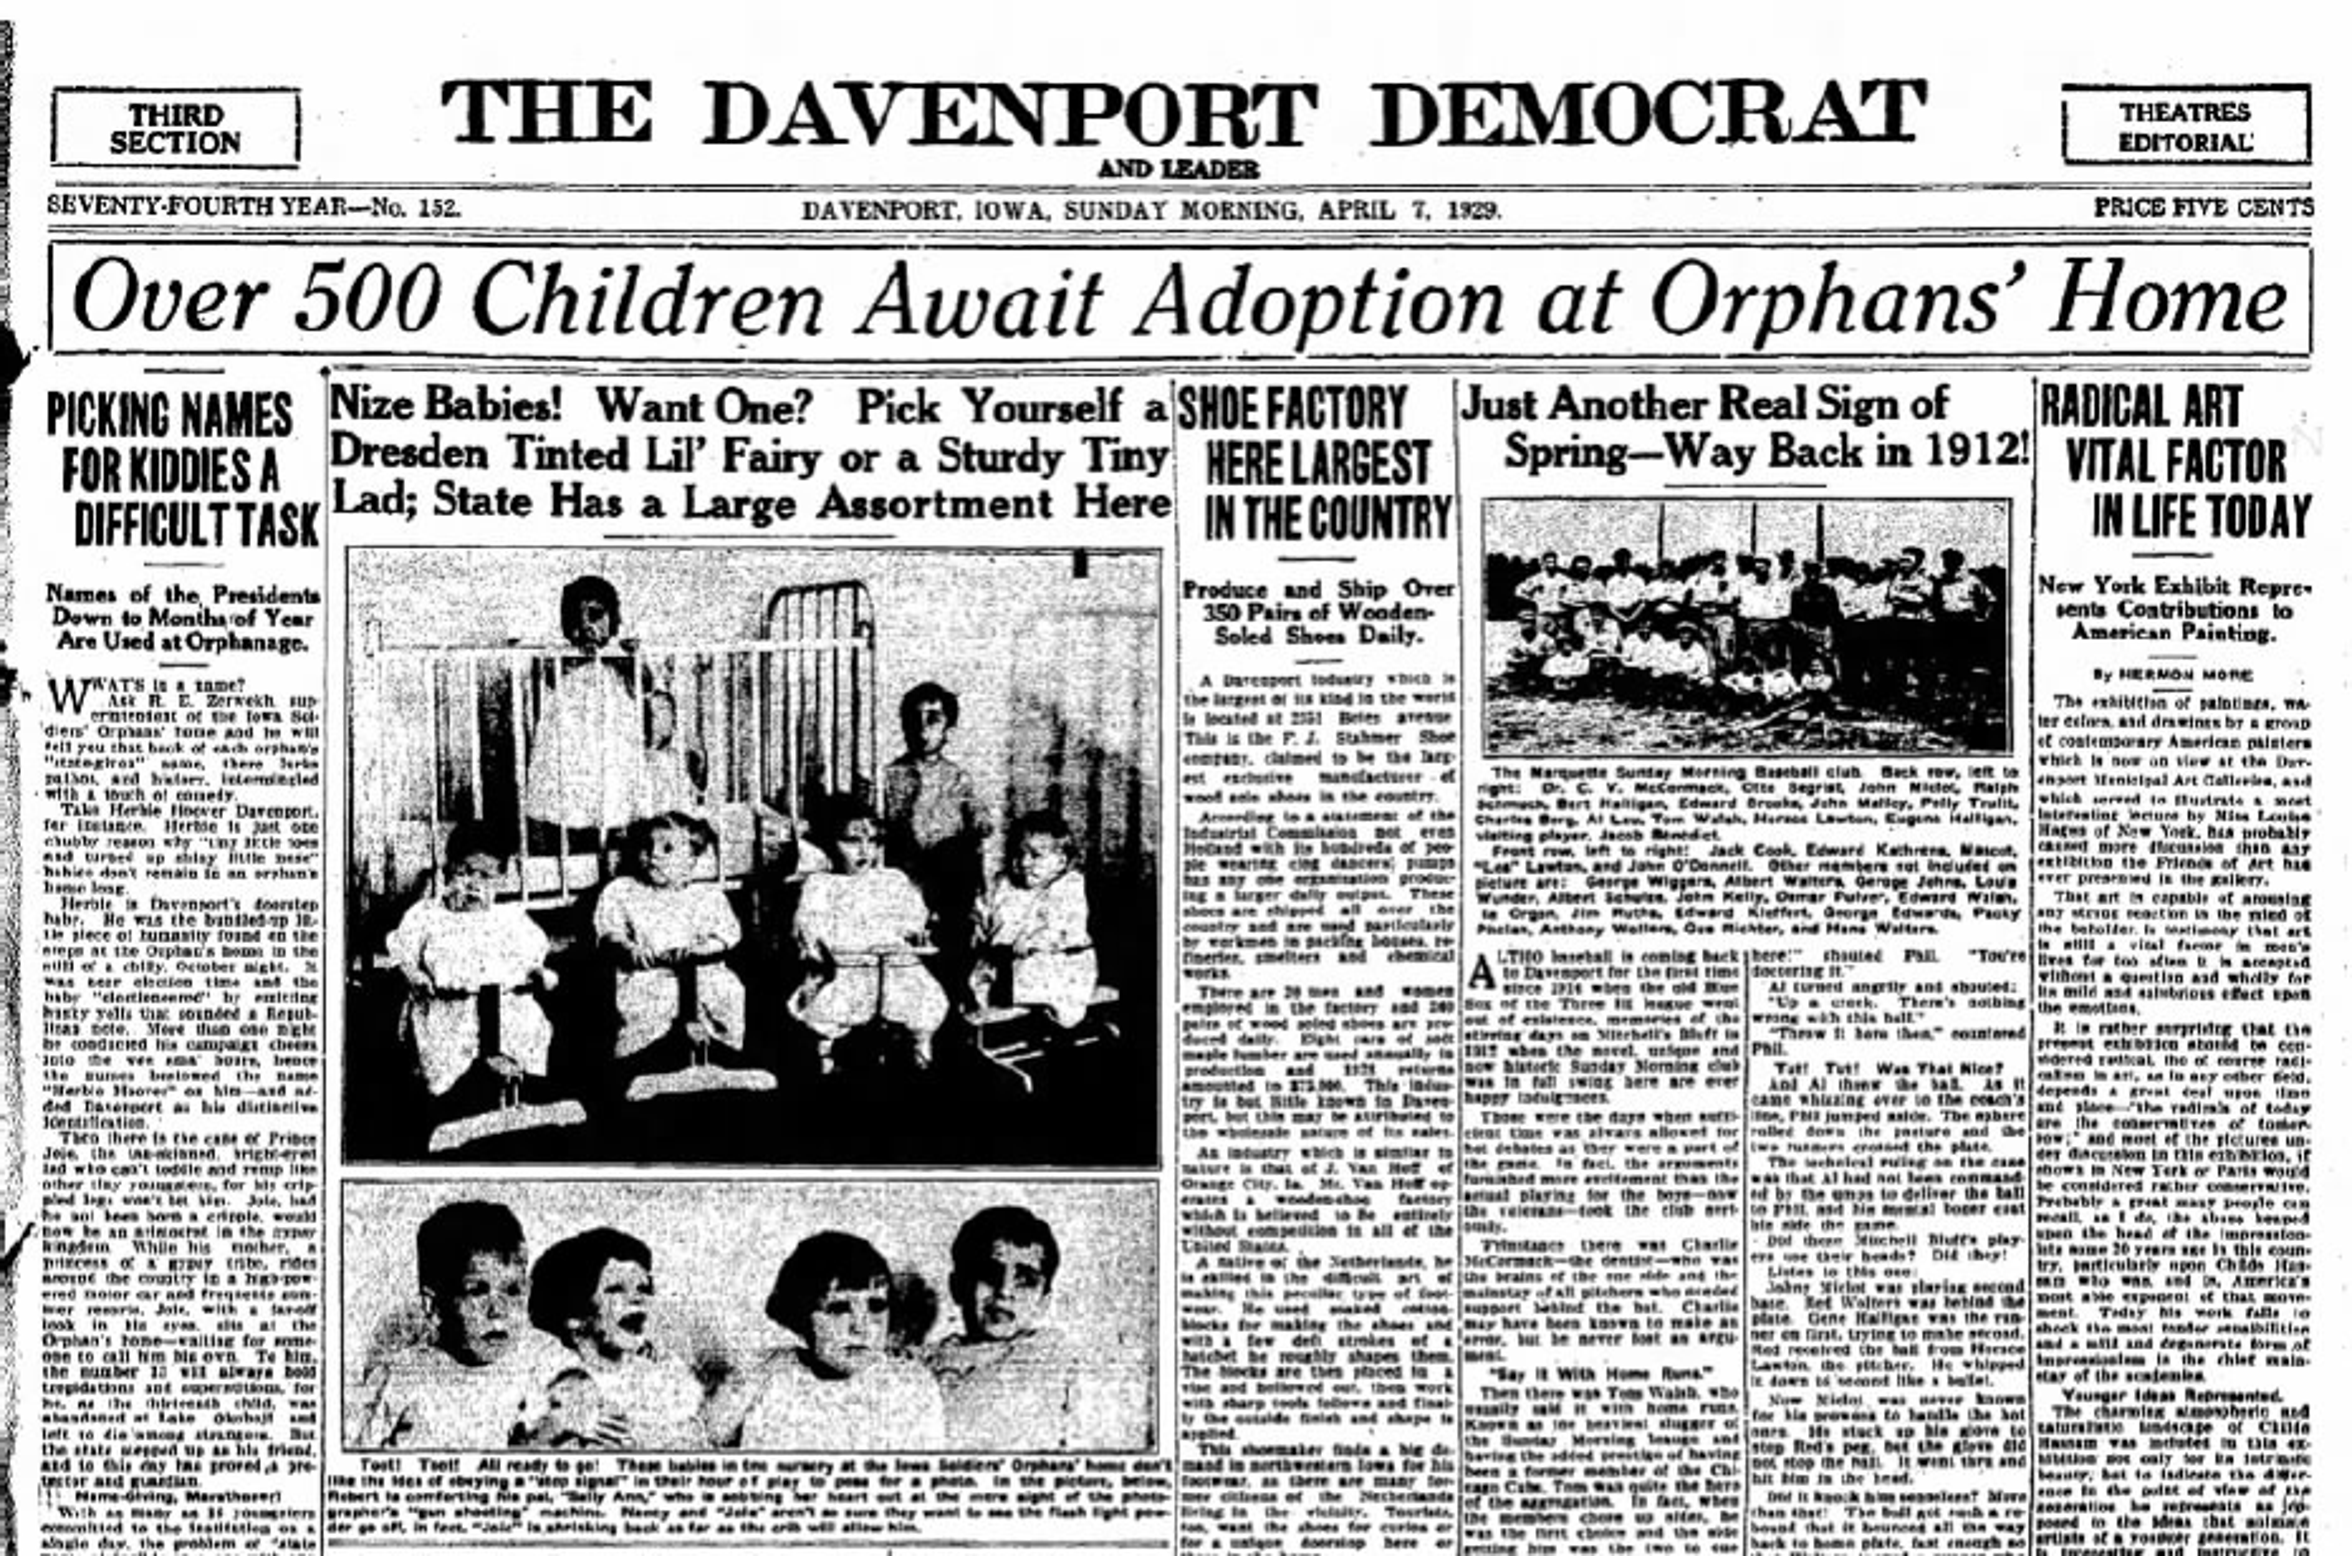 Newspapers of the day highlighted the problem of abandoned children. A headline from the Quad-City Times, in Davenport, Iowa, states over 500 children await adoption, April 7, 1929.